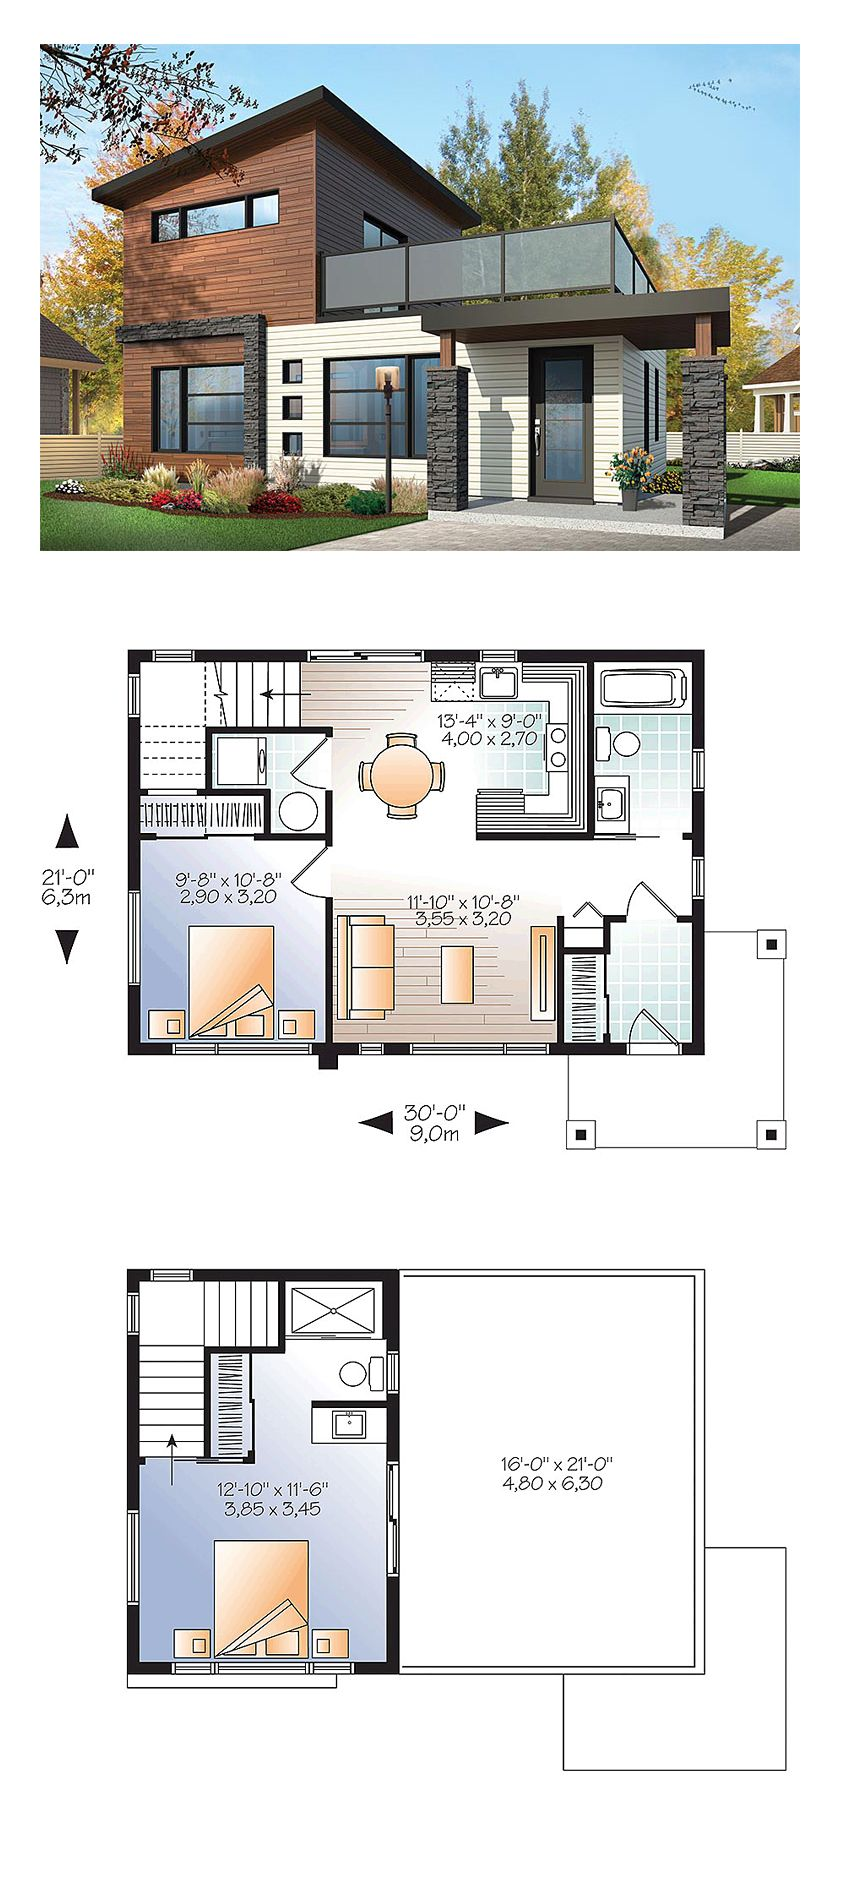 Modern Style House Plan 76461 With 2 Bed 2 Bath Modern Style House Plans Small House Plans House Plans